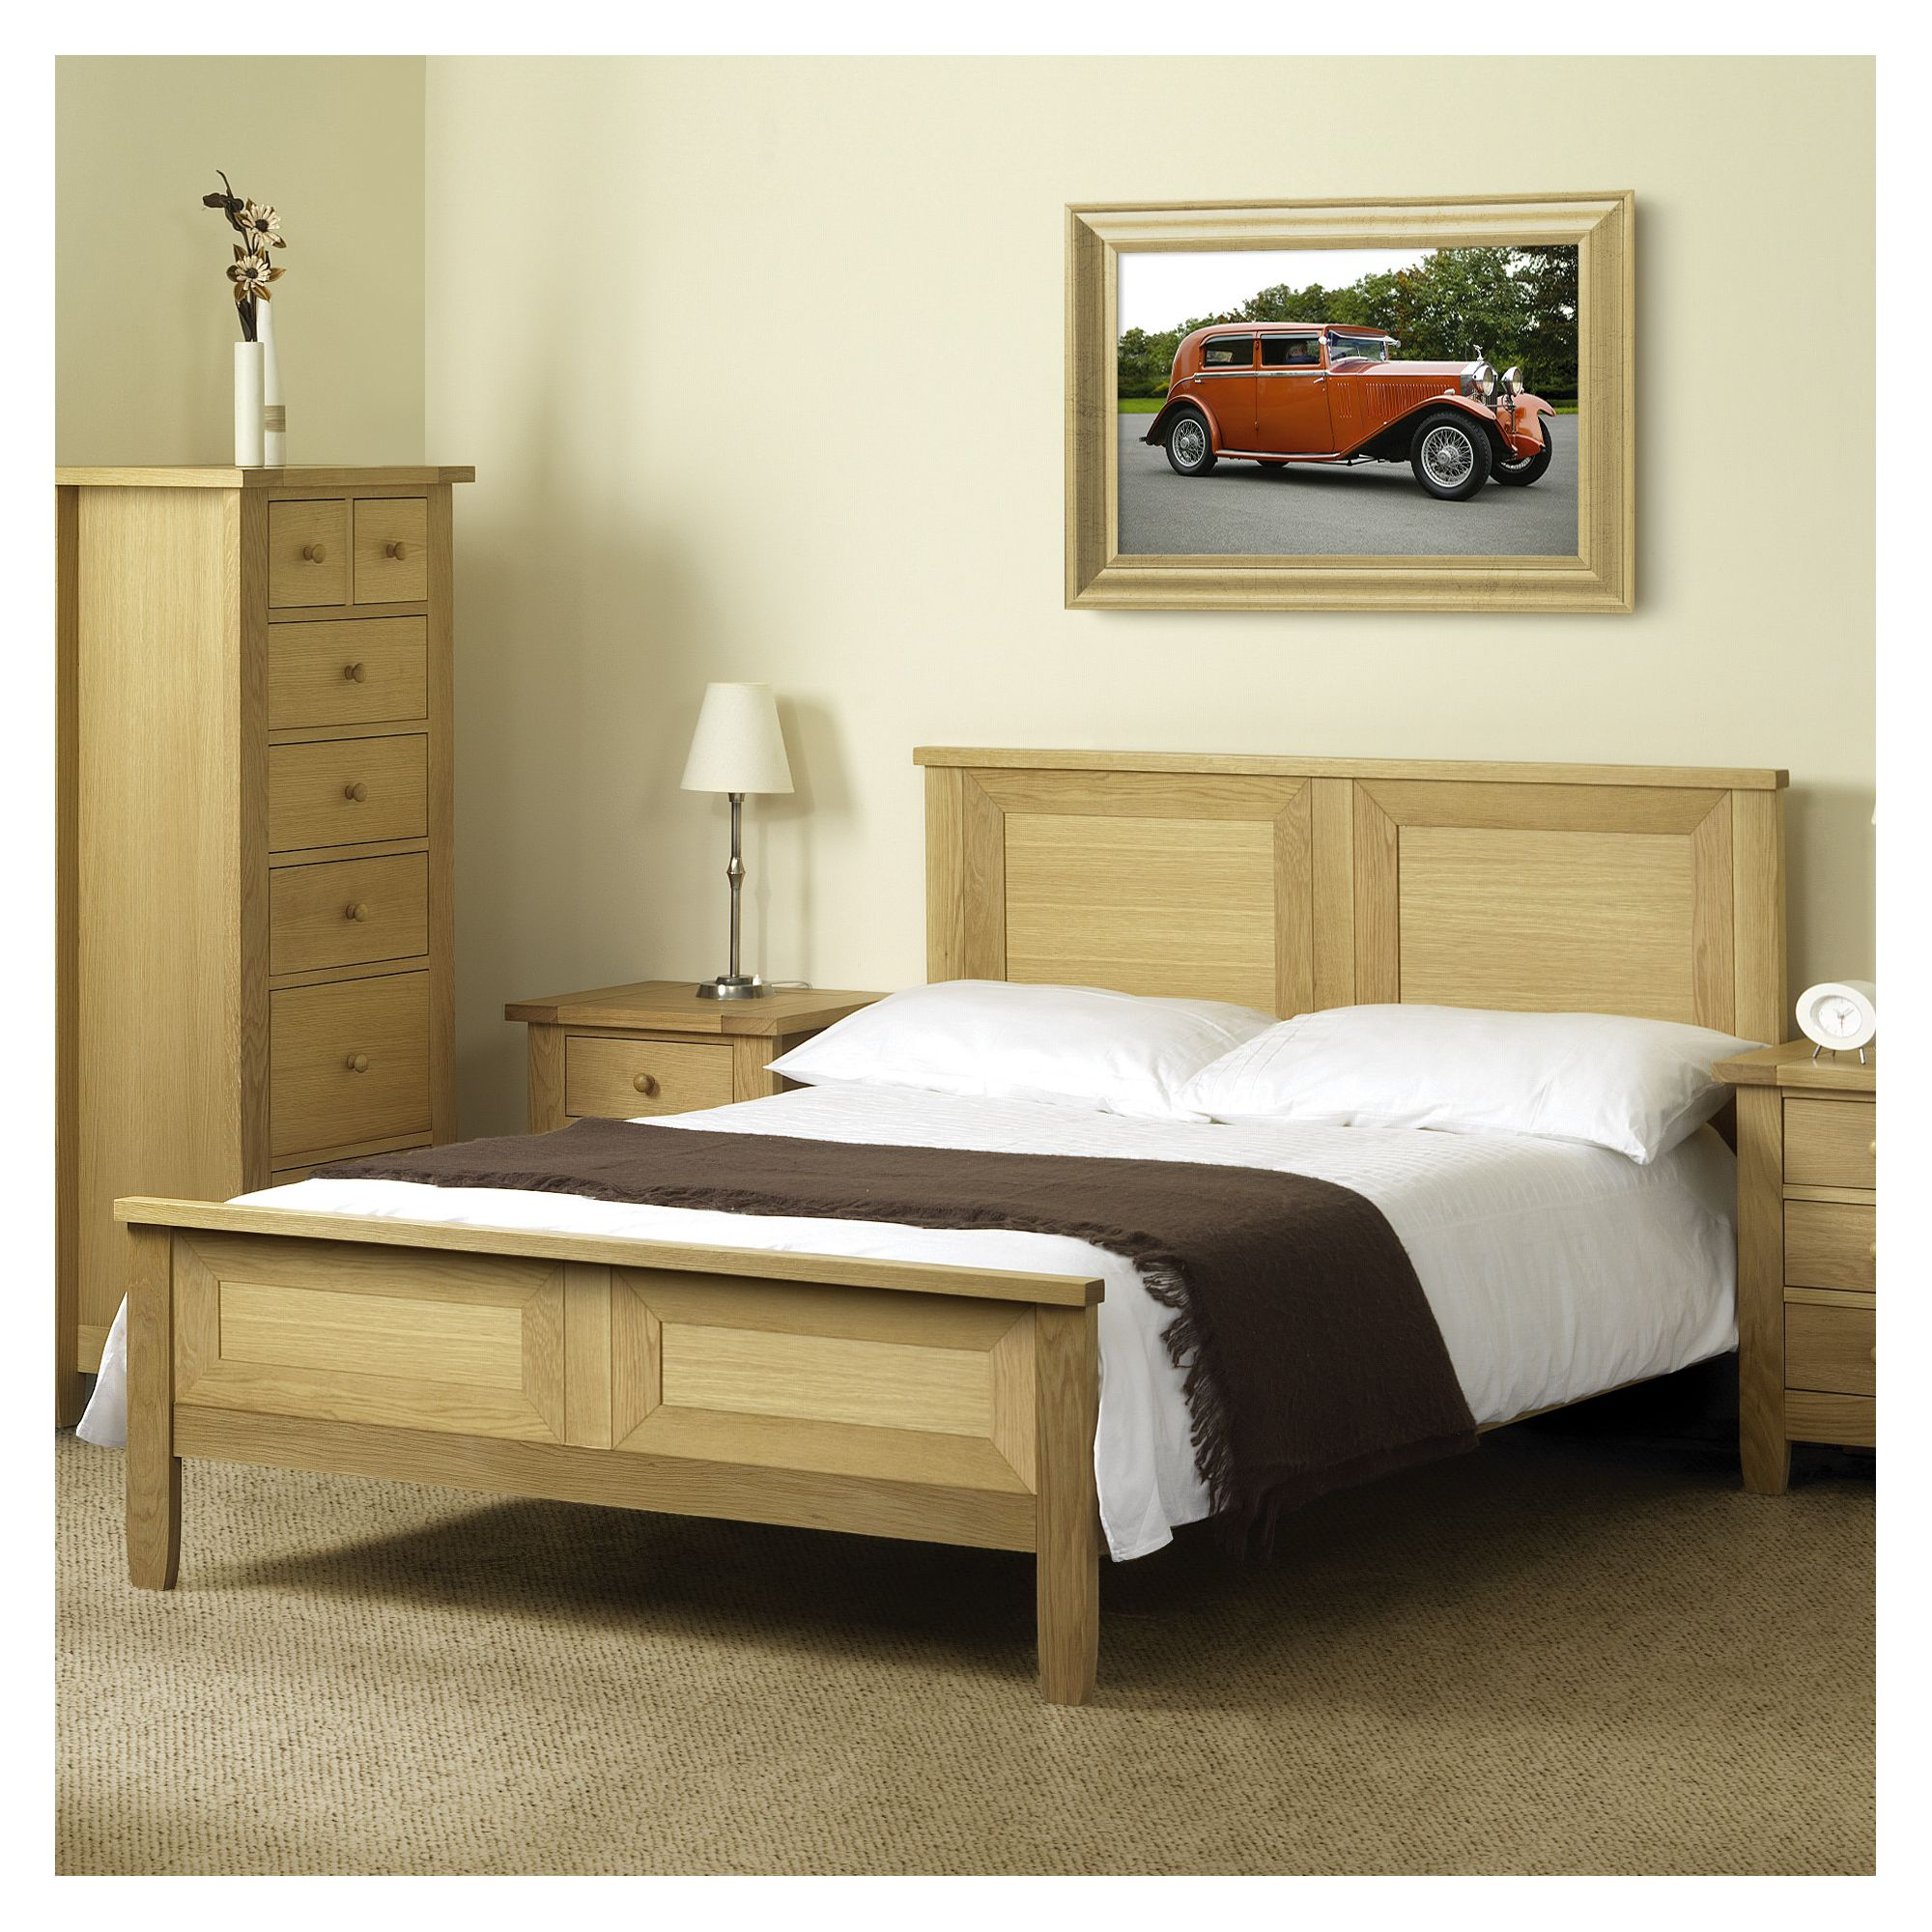 Julian Bowen Lyndhurst Bed Frame - Double at Tesco Direct